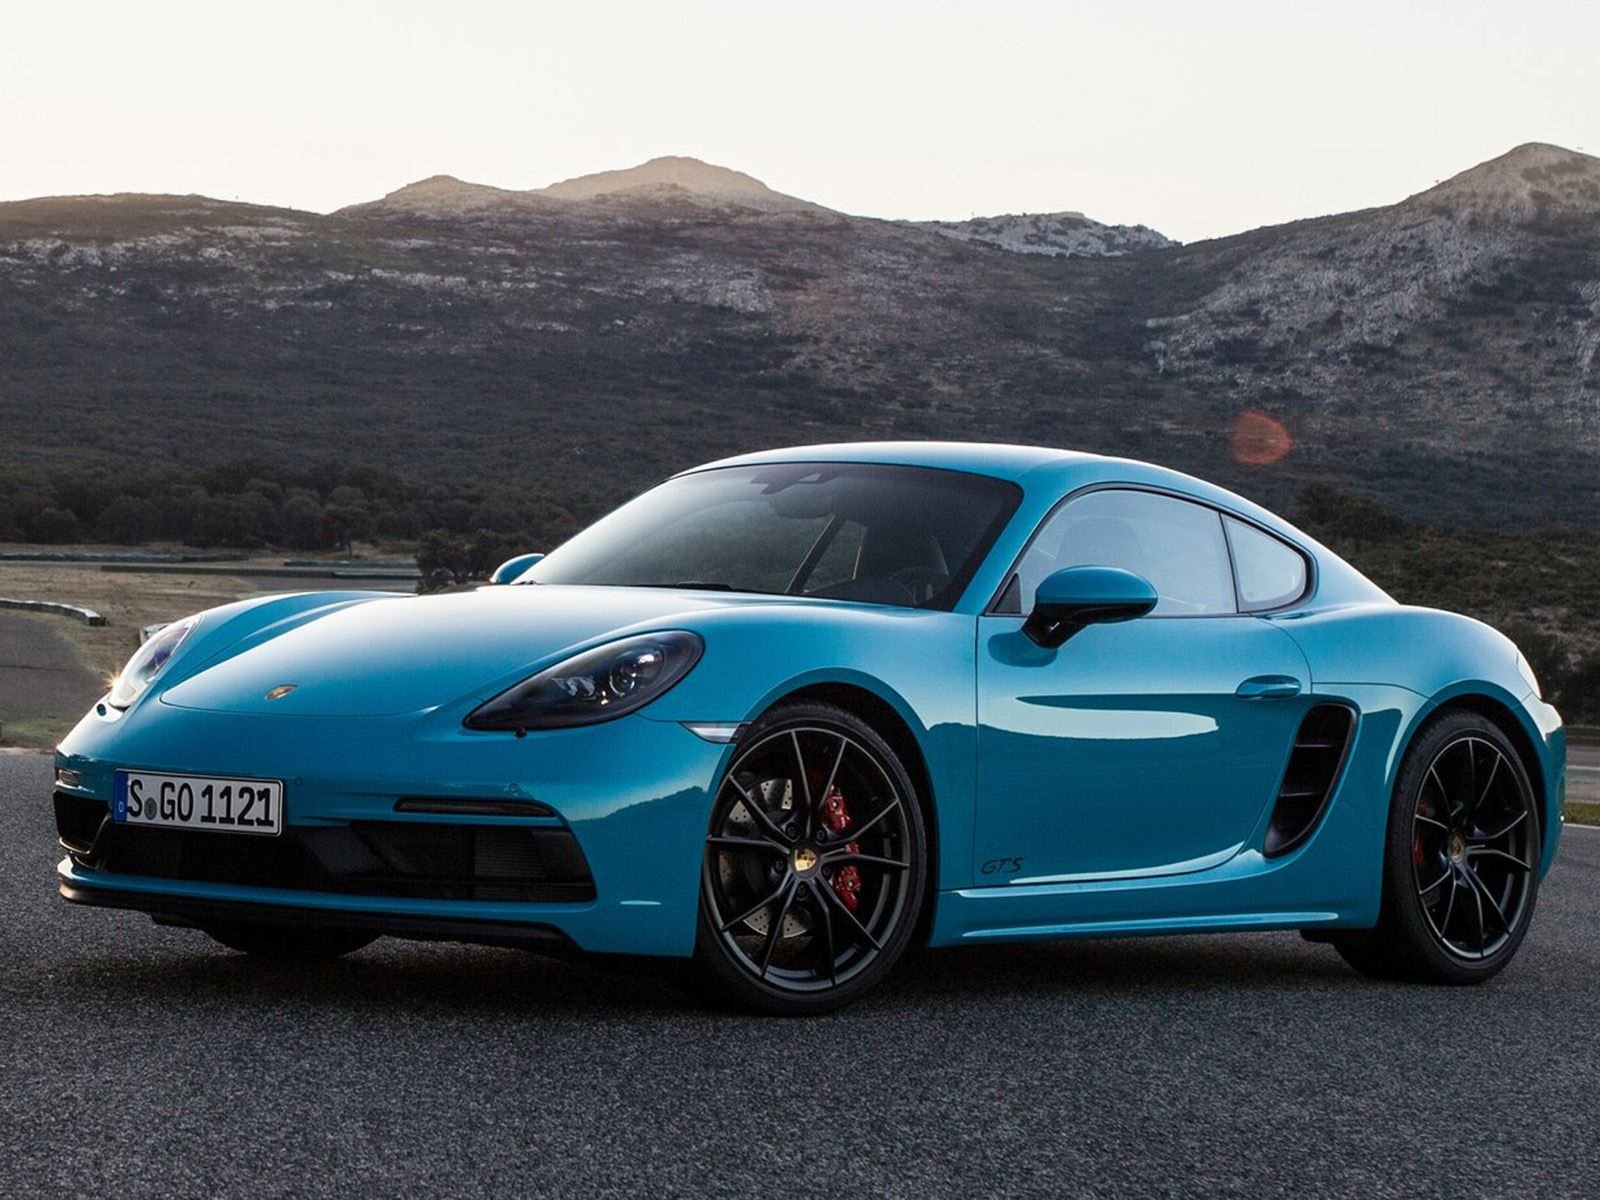 Future Of The Porsche 718 Boxster And Cayman Isn't Looking Too Good | CarBuzz